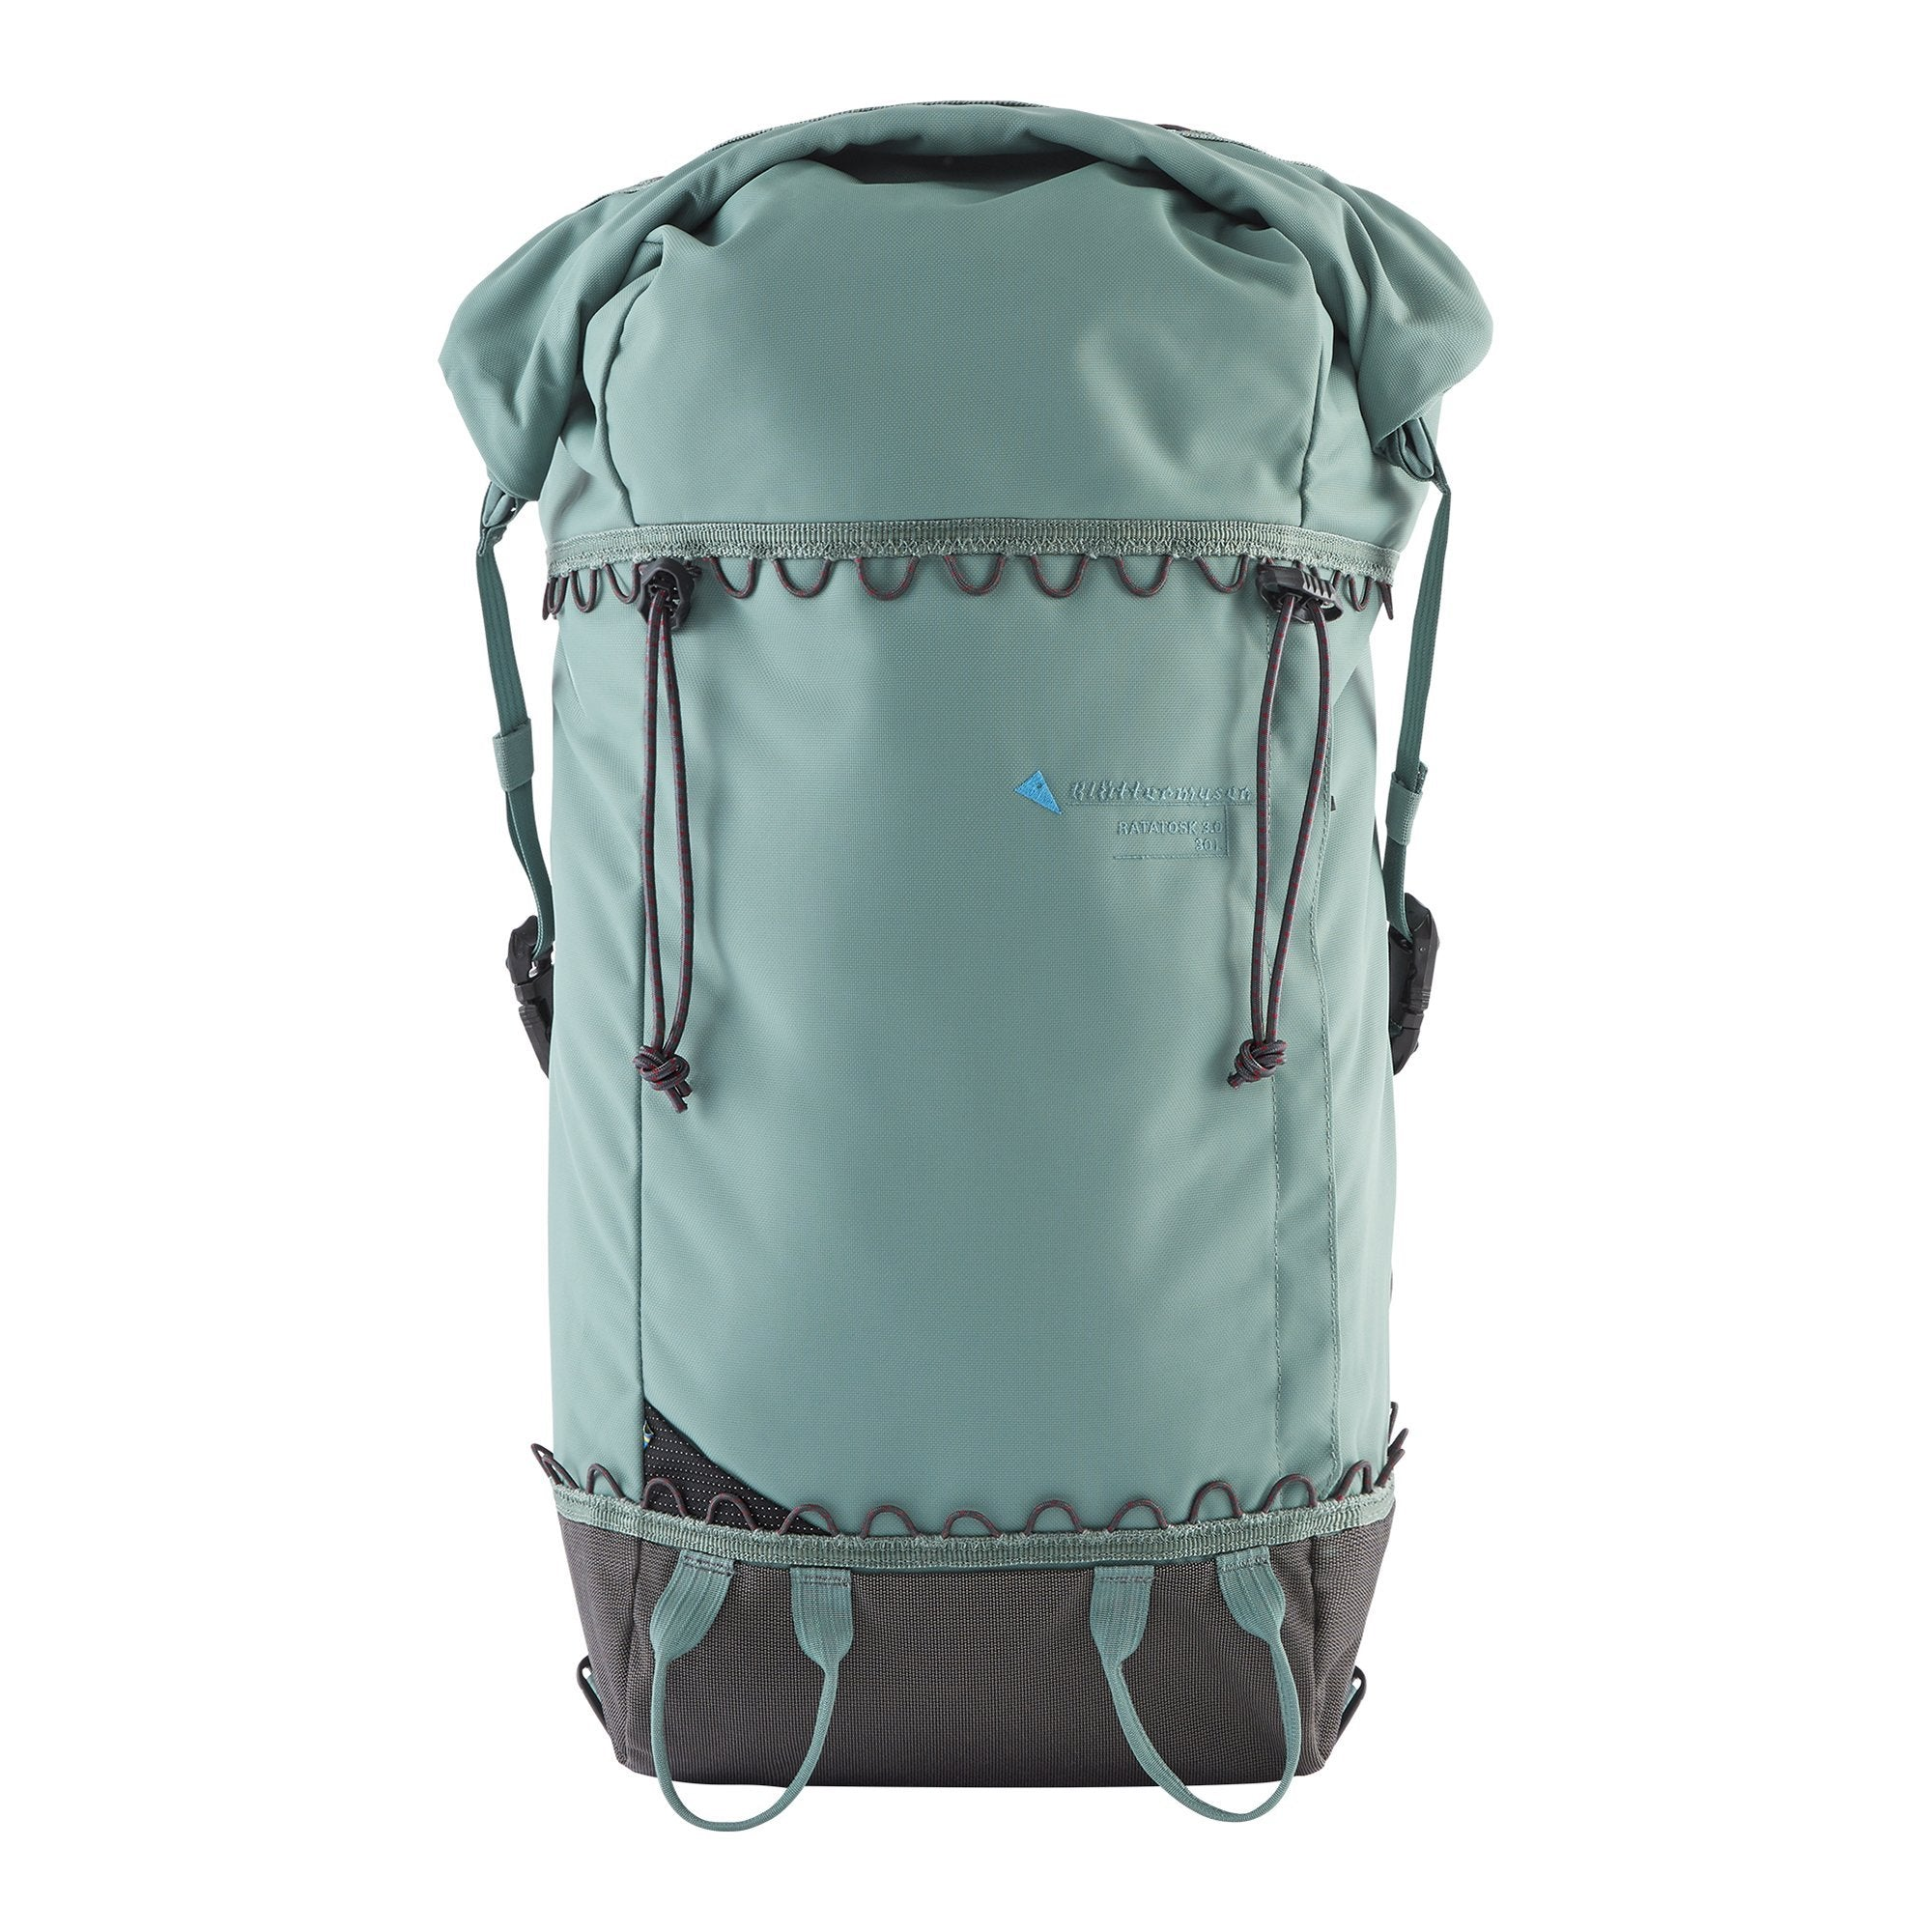 Ratatosk 3.0 Backpack 30L - Brush Green -Unisex - Vindpinad